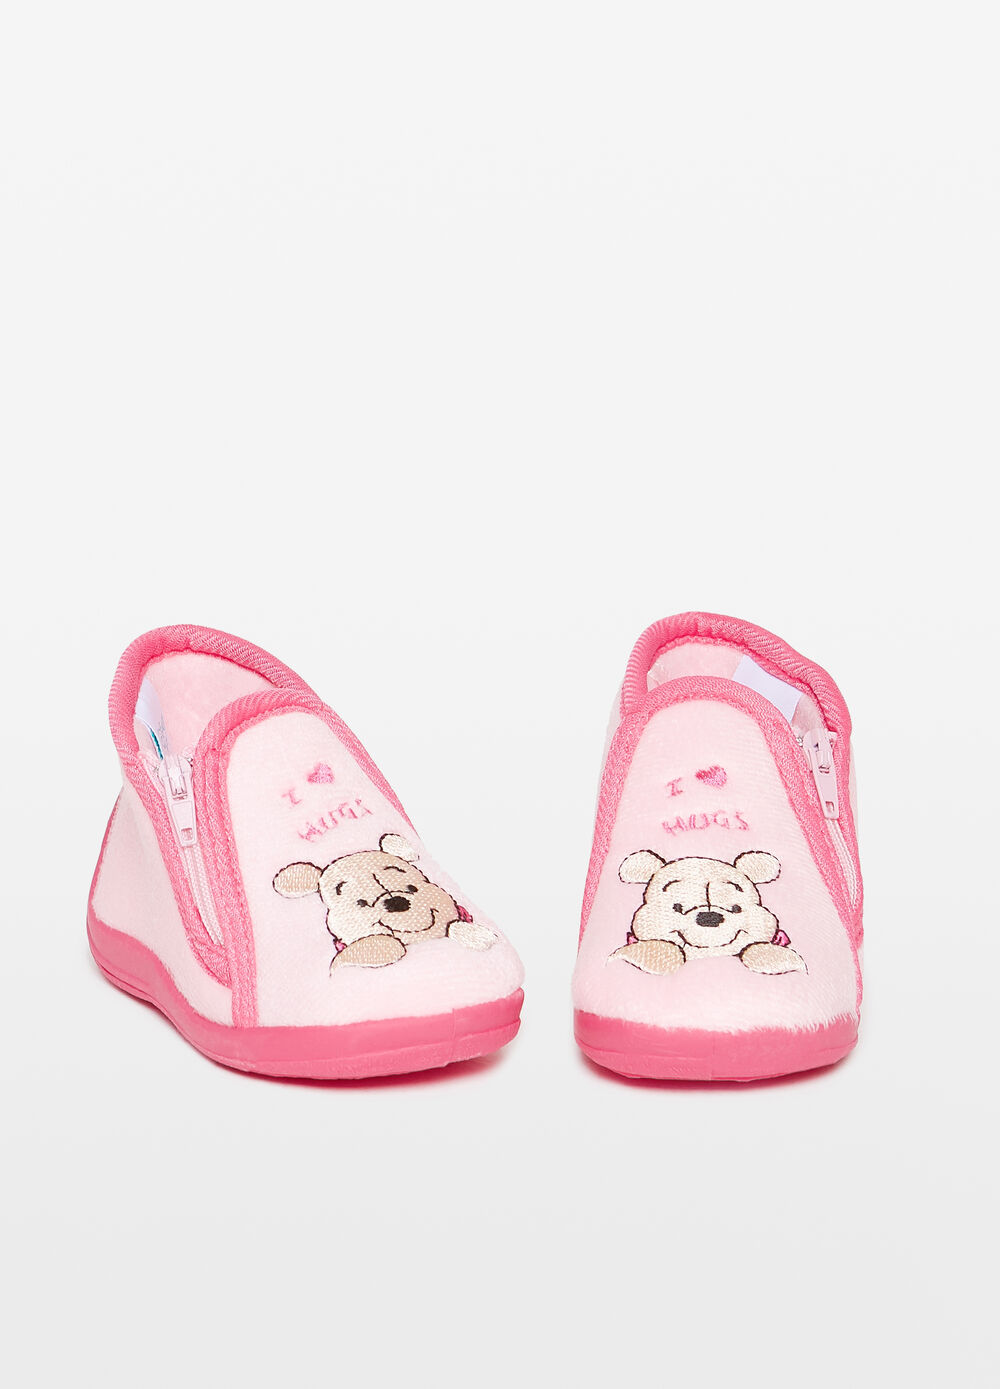 Winnie the Pooh slippers with zip